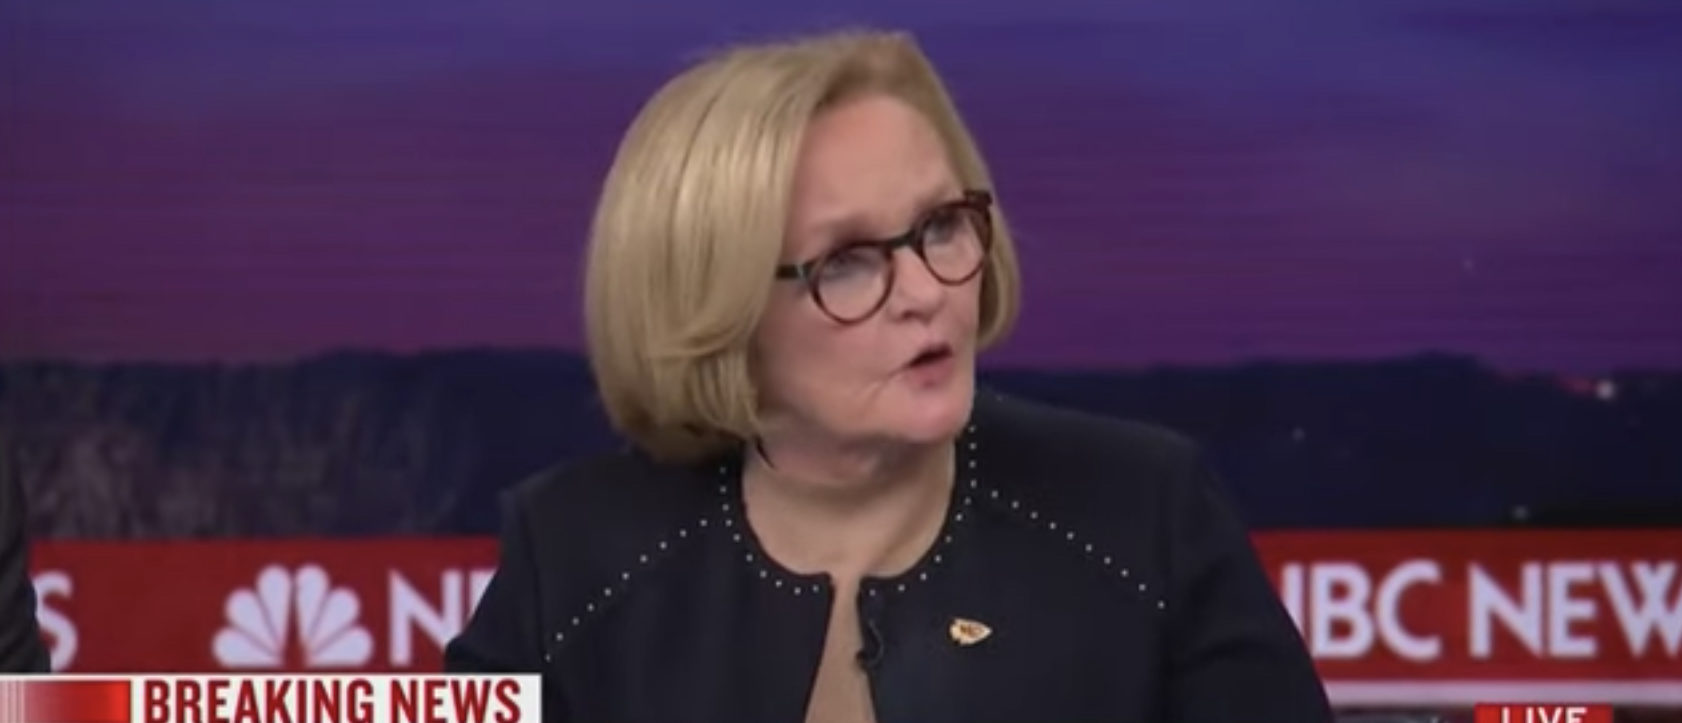 Putin 'Owns Donald Trump,' Says MSNBC Analyst Claire McCaskill